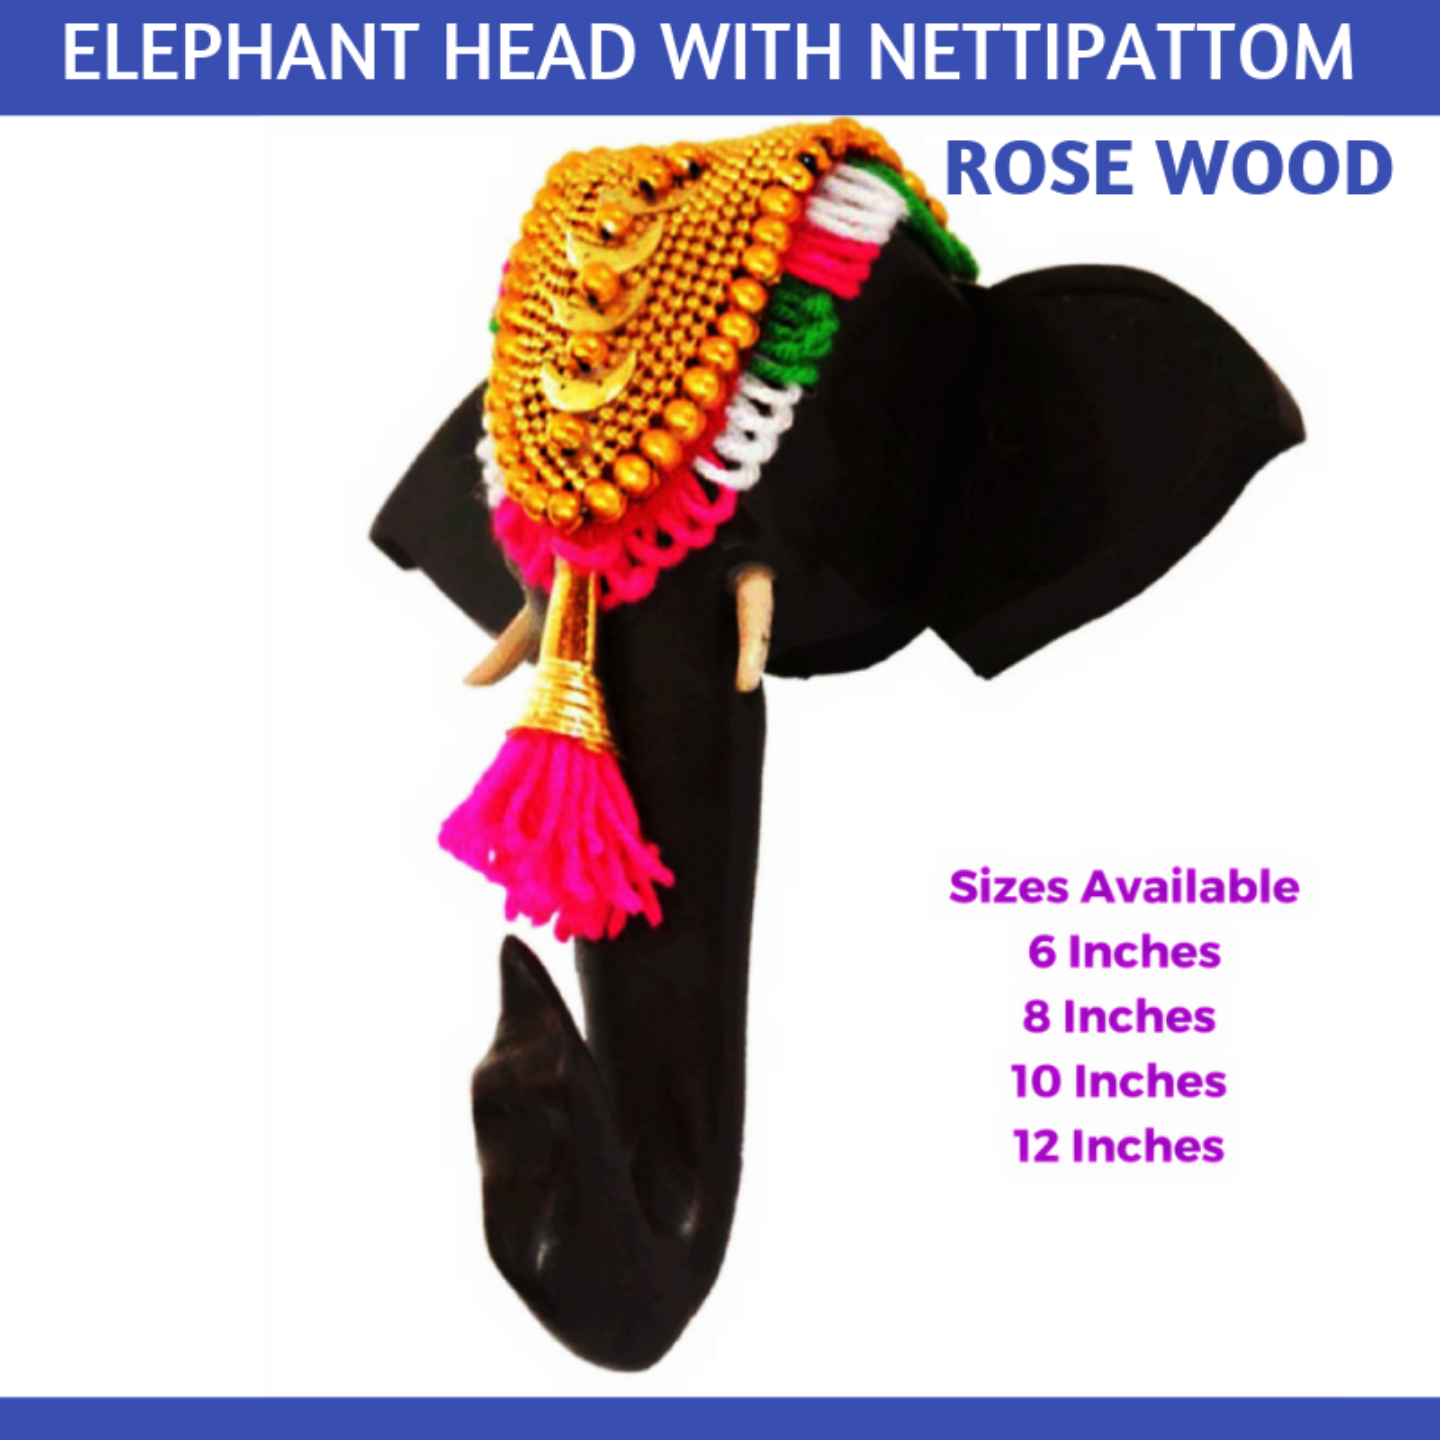 Elephant Head with Nettipattom - Rosewood